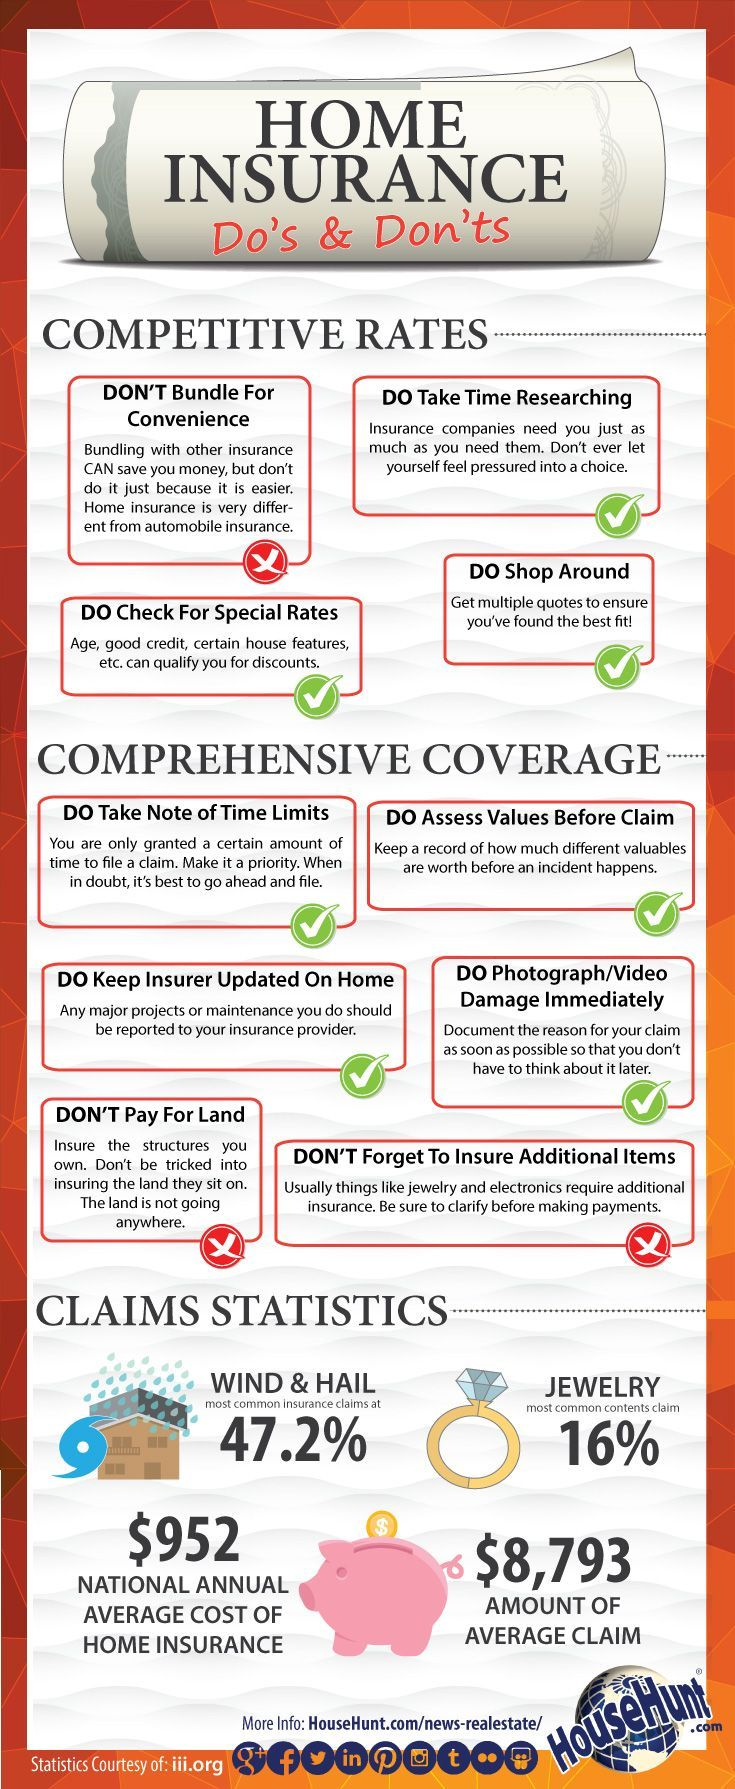 Homeowners Insurance Quote Custom 19 Best Home Insurance Images On Pinterest  Home Insurance Real . Design Inspiration